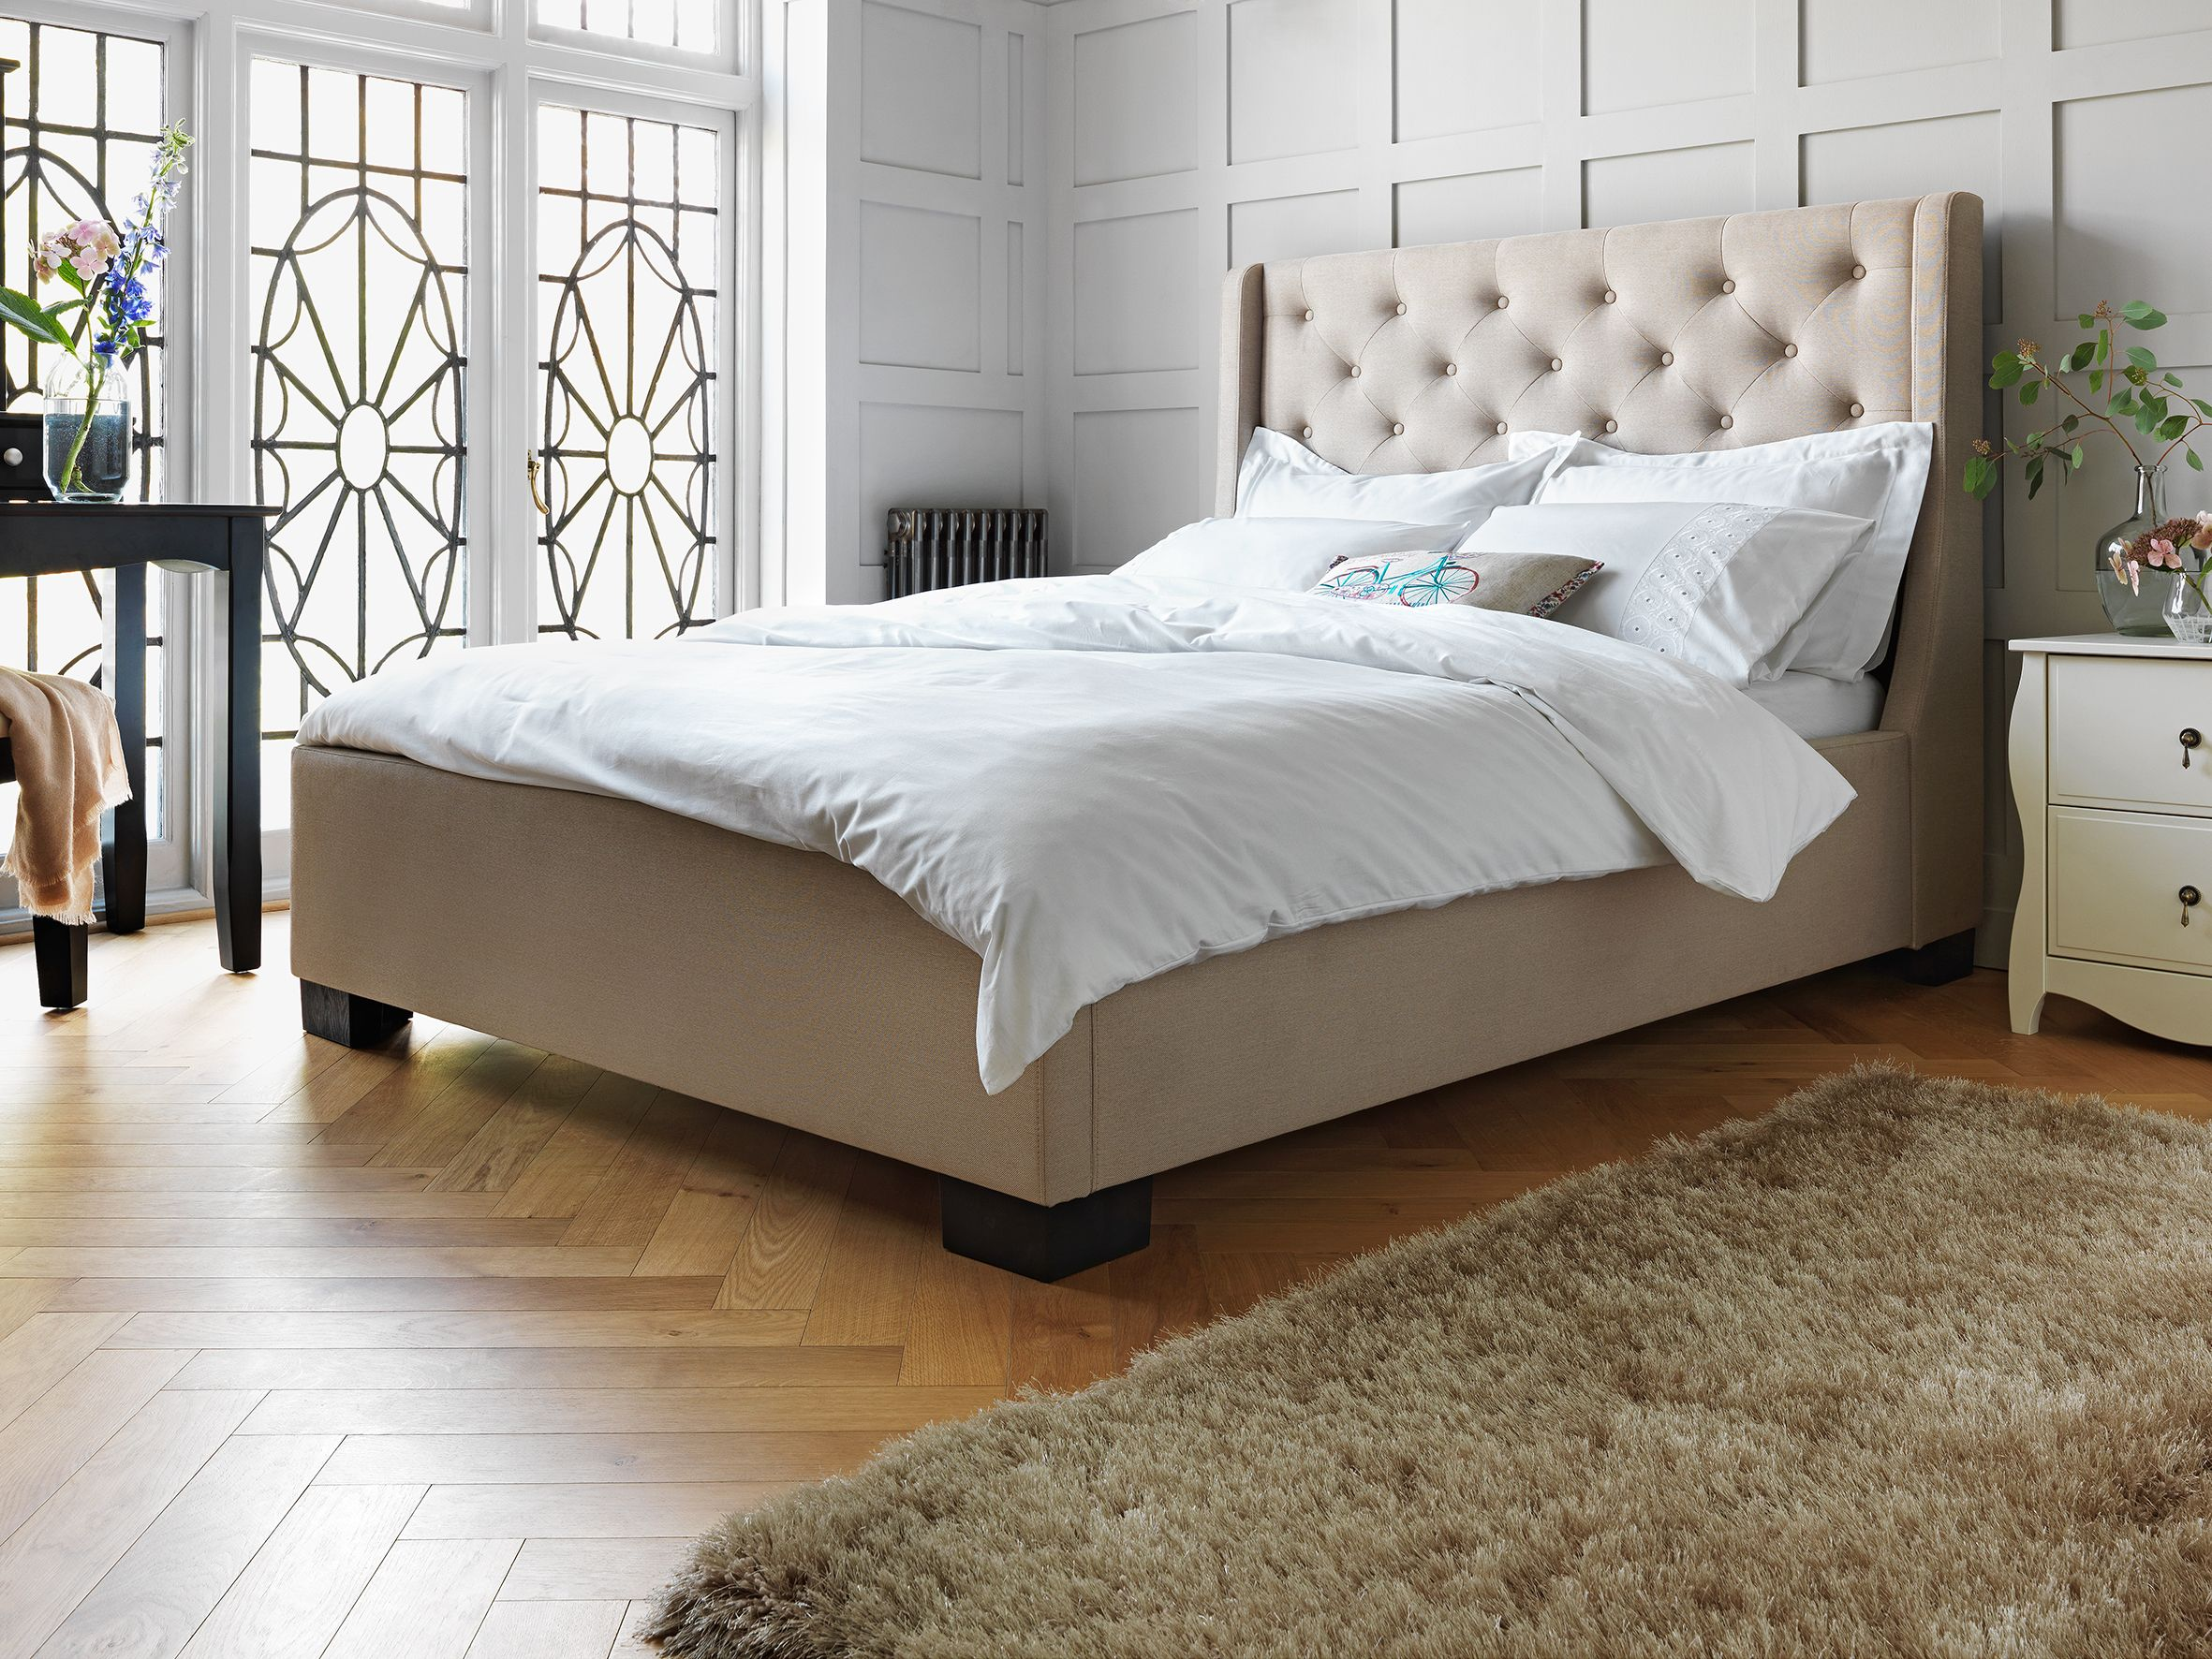 buy heart of house levena quilted kingsize bed frame at argos.co